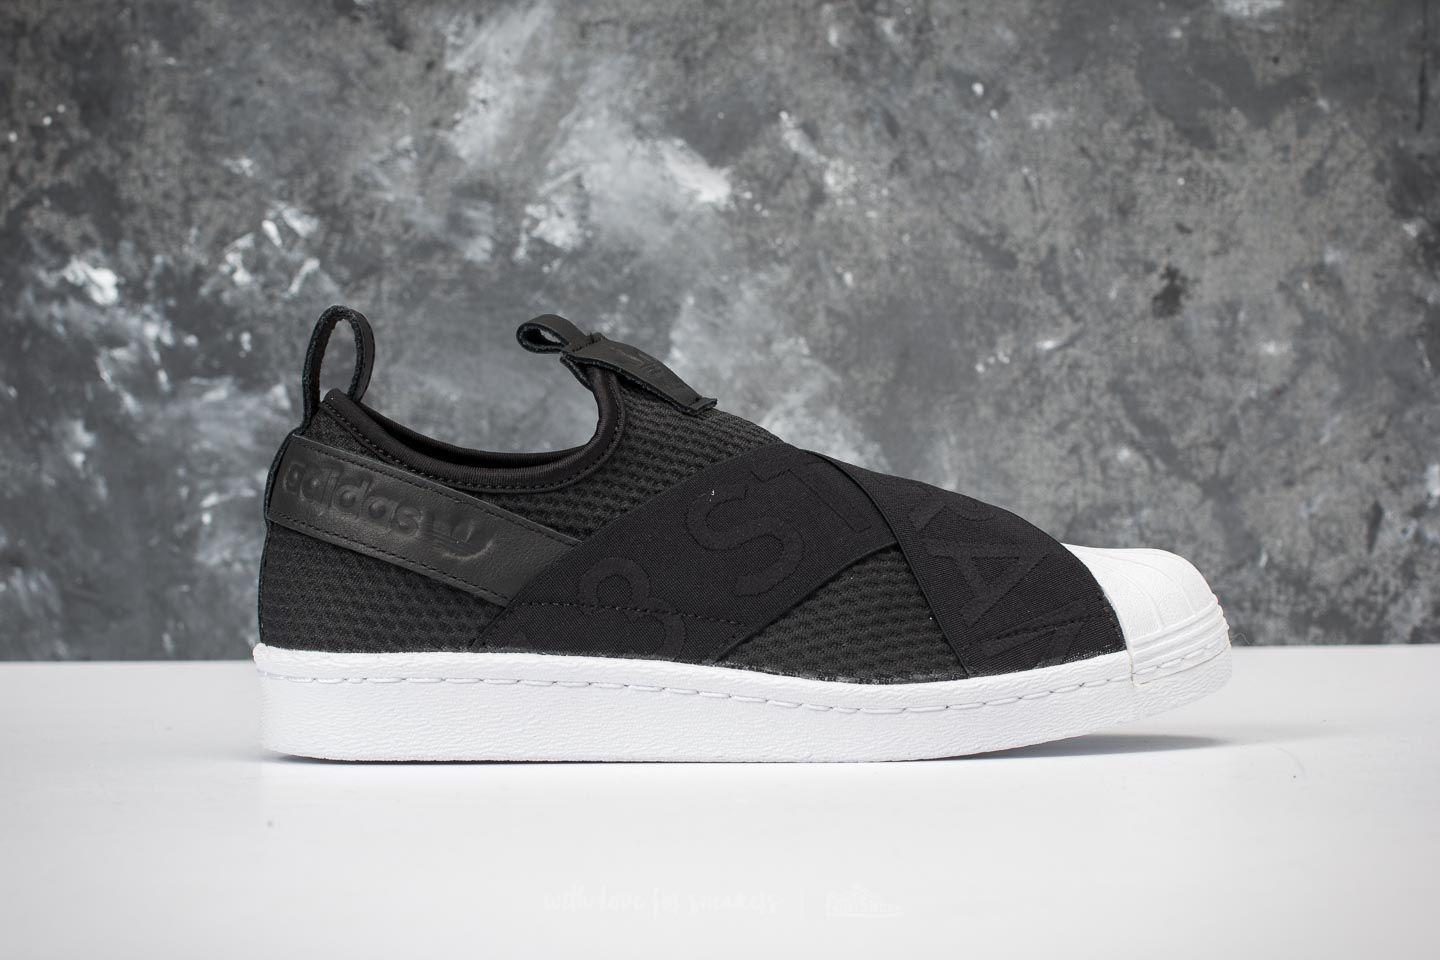 new style 1898e 8b559 Adidas Originals - Adidas Superstar Slip-on W Core Black  Core Black  Ftw.  View fullscreen